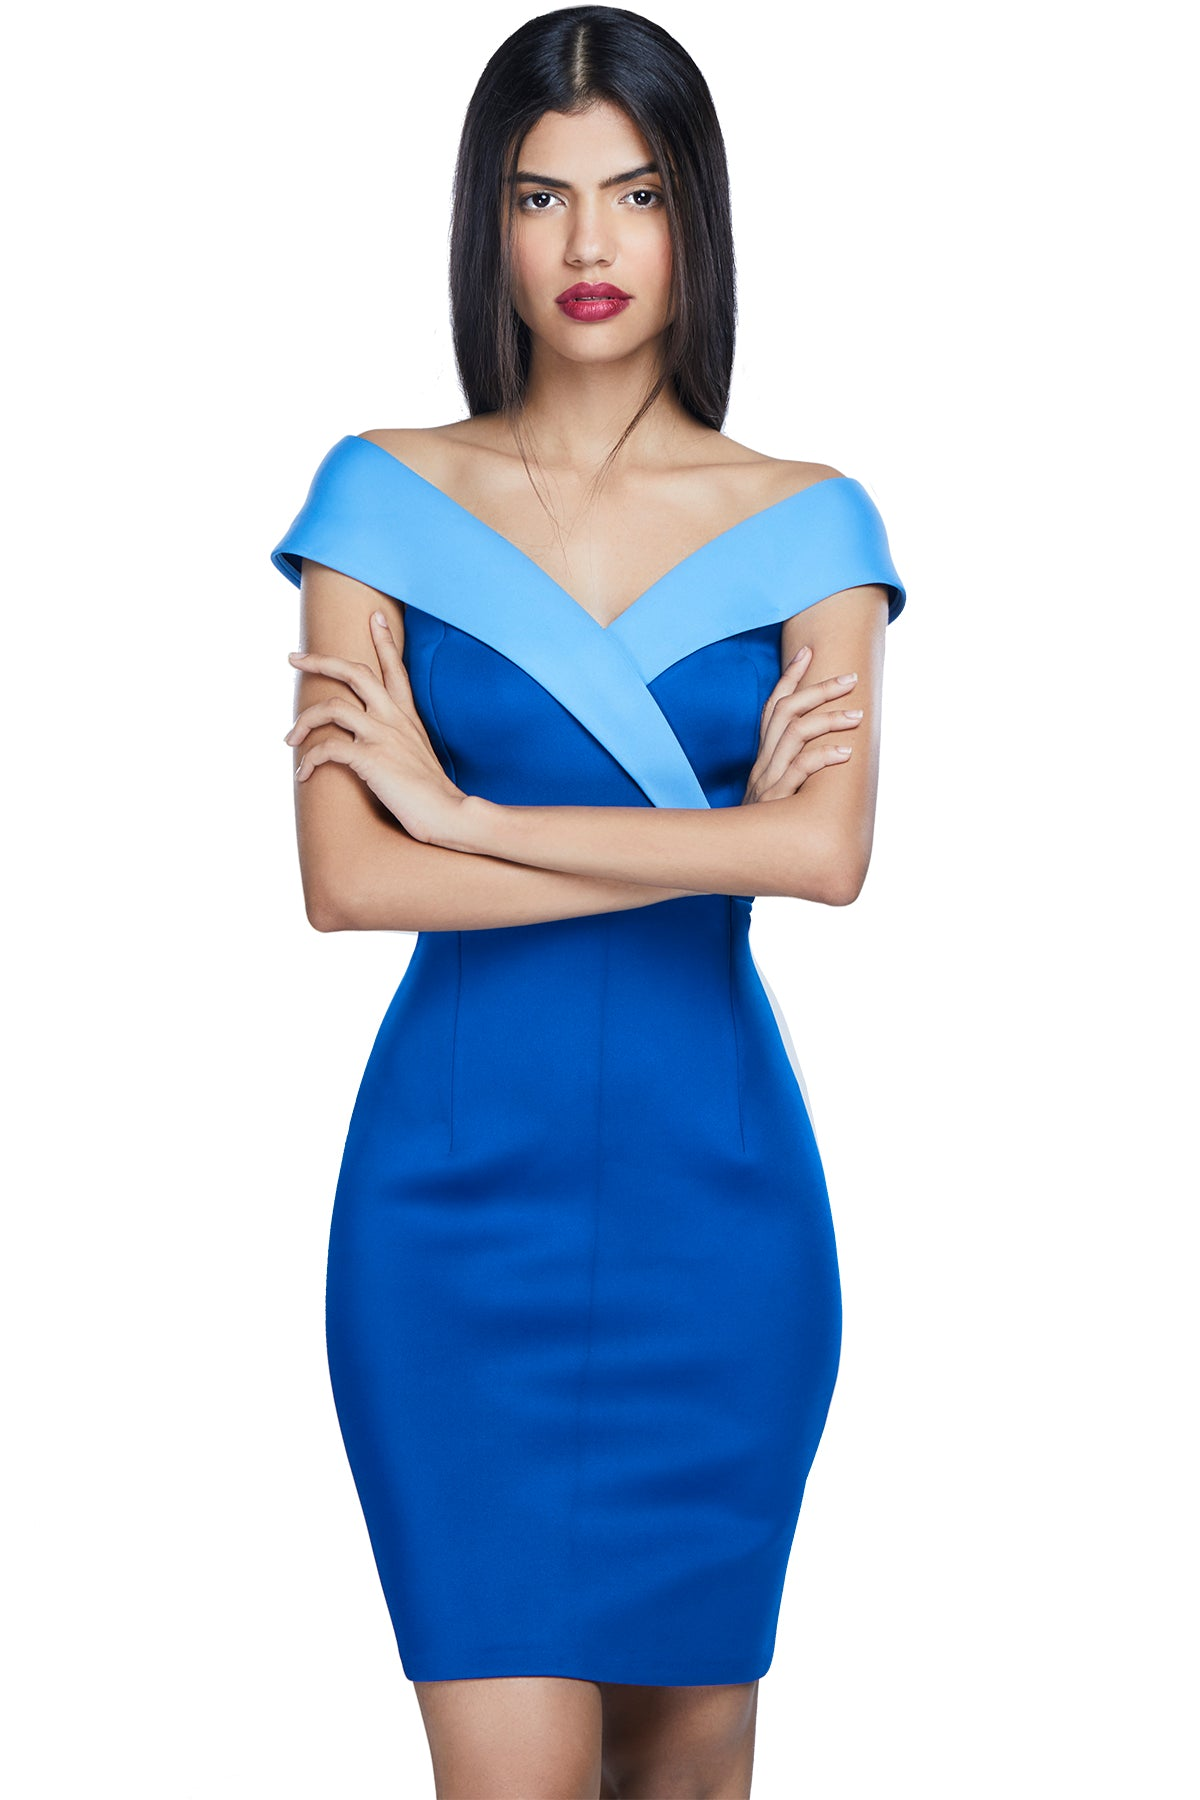 Go bodycon, go bold or go home! Like a bolt from the blue, this off-shoulder, double scuba dress is perfect for an office party, date night or grad ceremony.